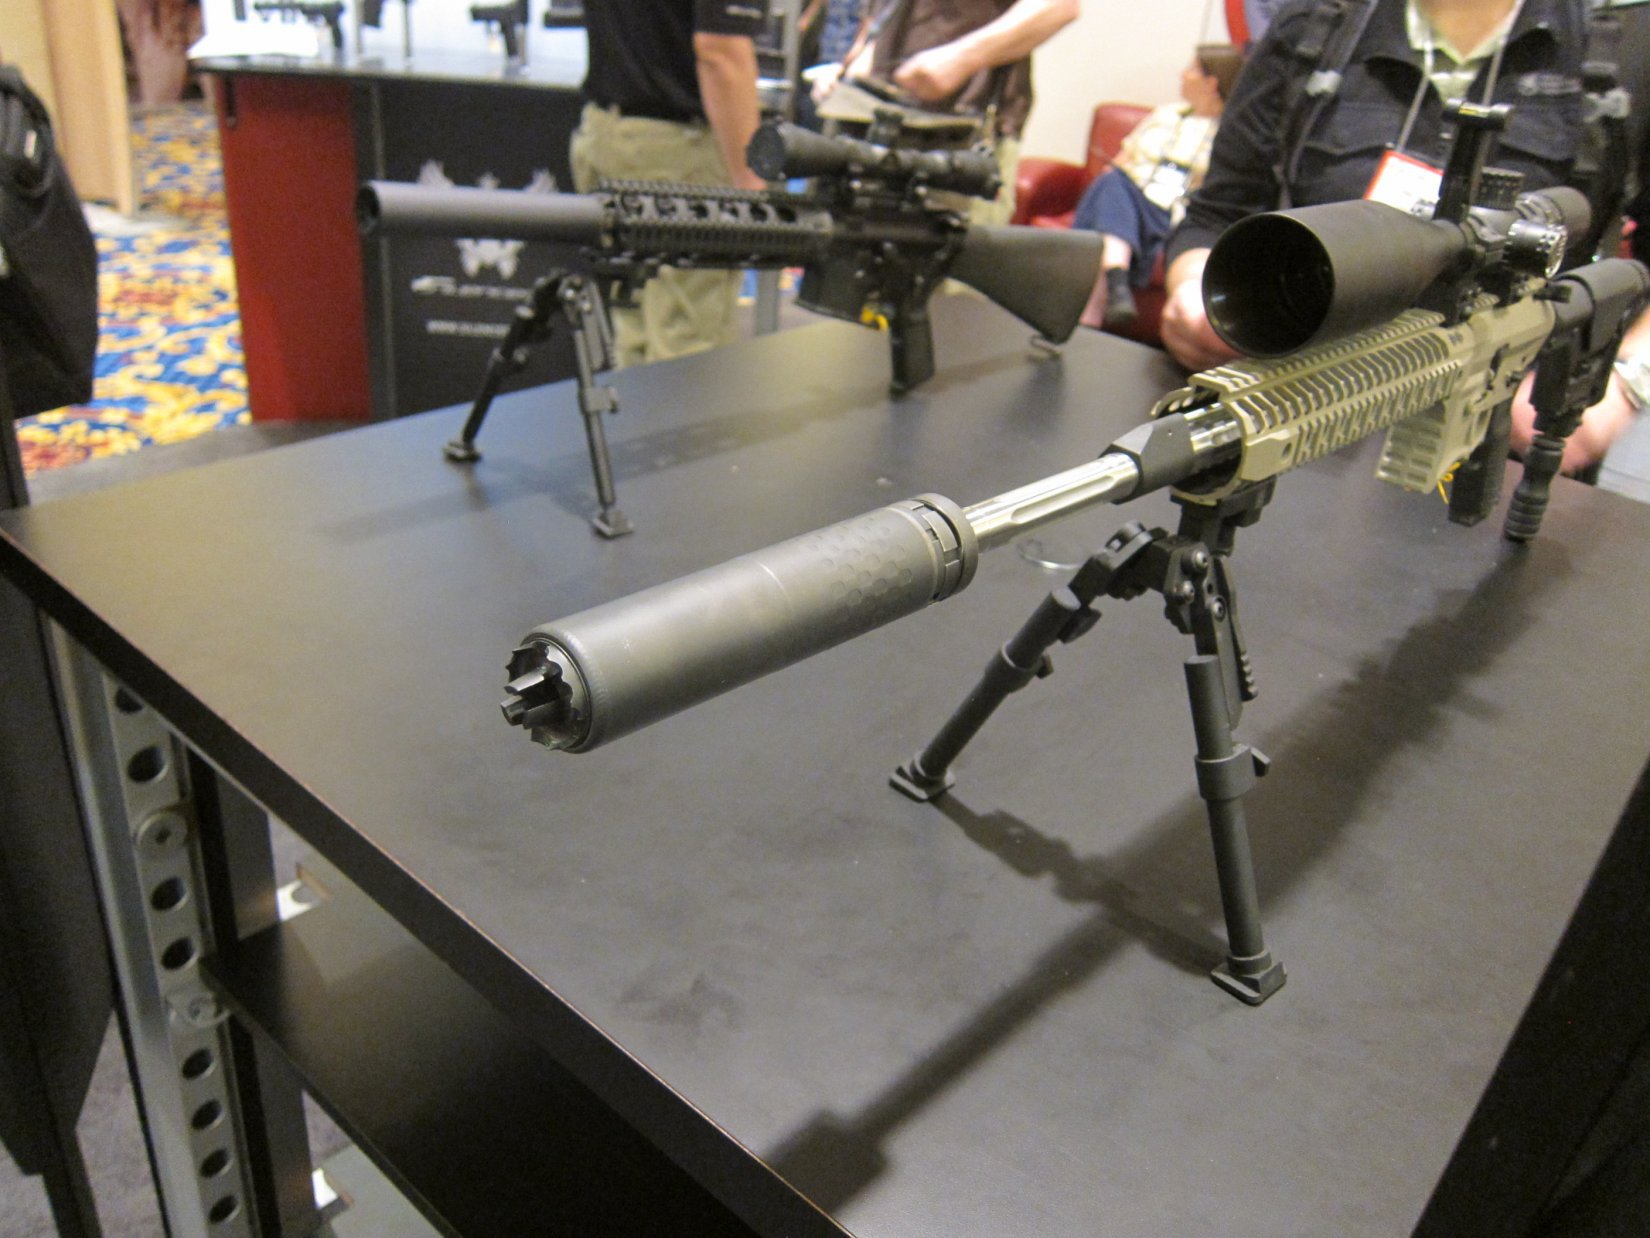 Silencerco 5.56 Saker 5.56mm NATO Silencer Sound Suppressor at SHOT Show 2012 DefenseReview.com DR 1 Silencerco Saker 5.56 Modular/Universal 5.56mm Rifle Silencer/Sound Suppressor with Trifecta Fast Attach Mount and Trifecta RS Flash Hider/Suppressor at SHOT Show 2012: Most Innovative and Modular 5.56mm Muzzle Can Ever? (Video!)